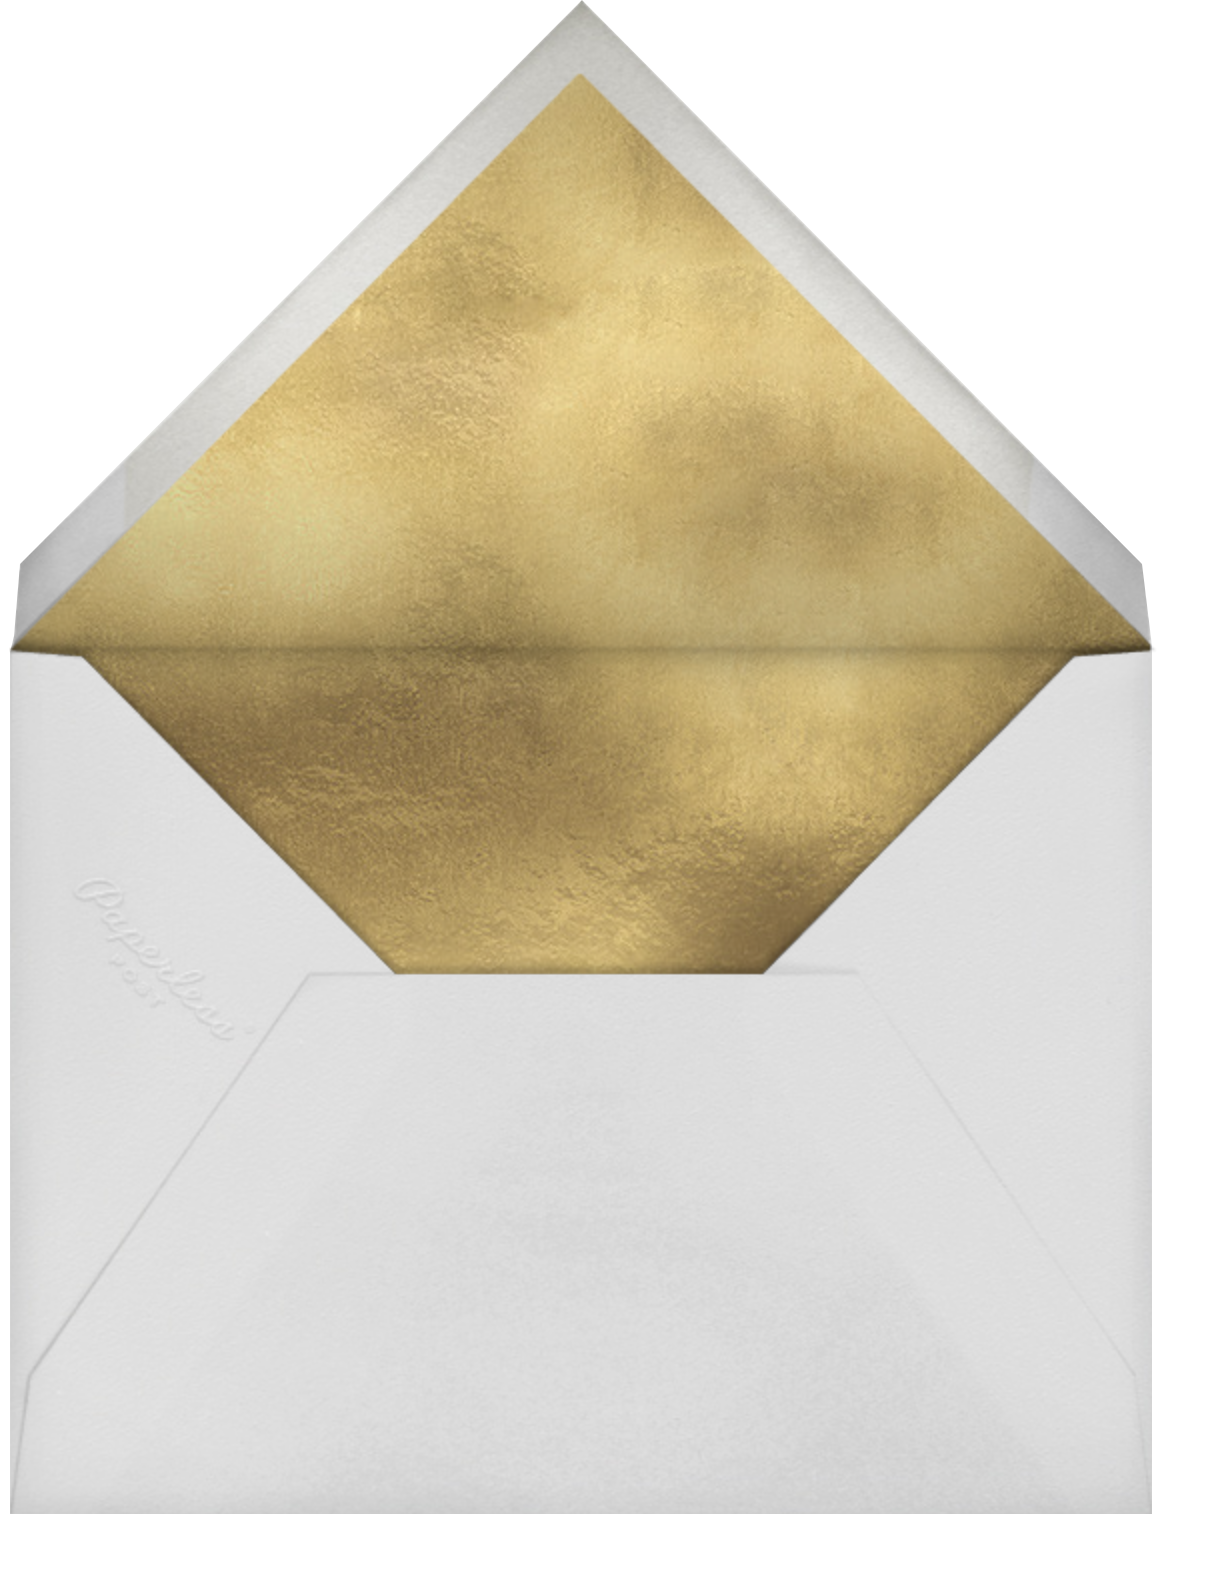 Fionola - Paperless Post - Engagement party - envelope back